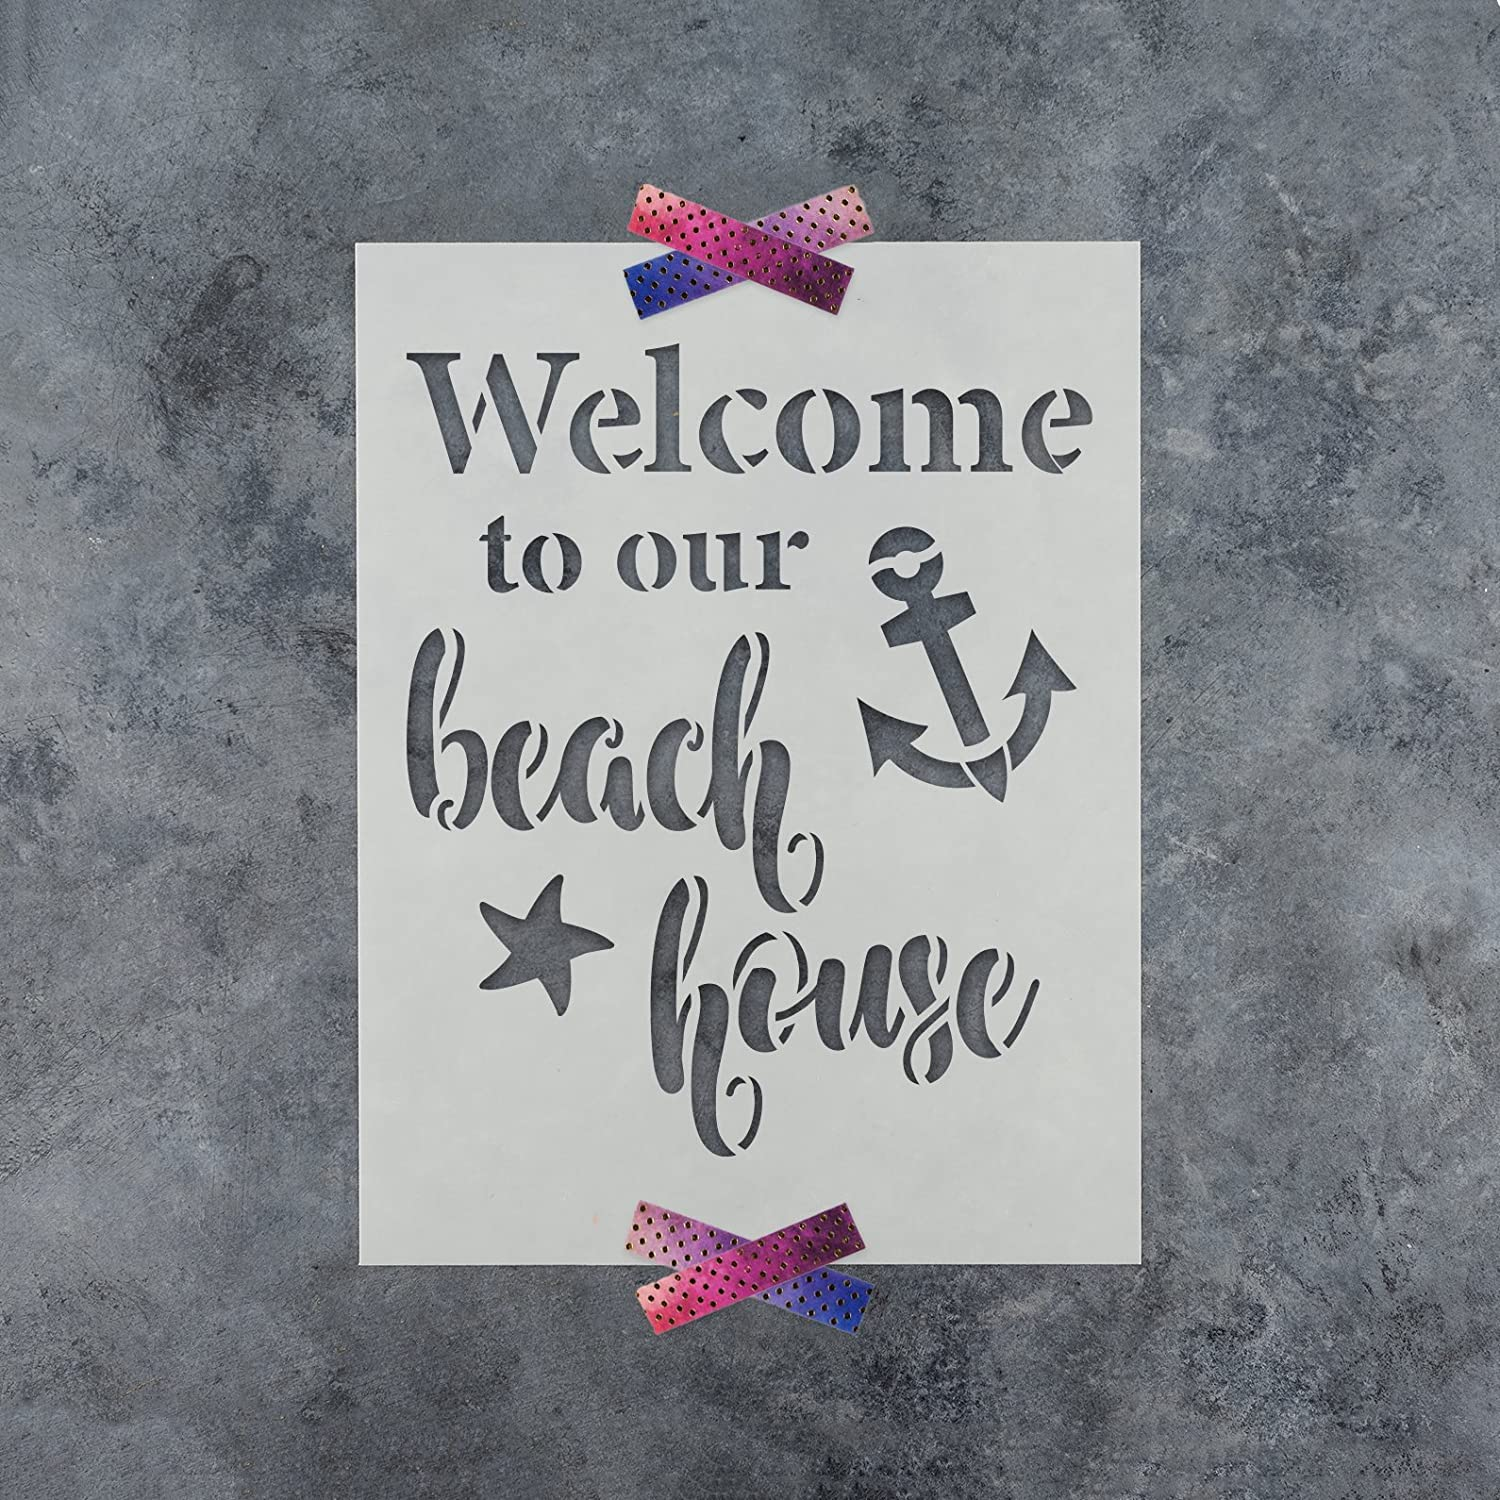 Reusable Stencils for Painting in Small /& Large Sizes Welcome to Our Beach House Stencil Template for Walls and Crafts